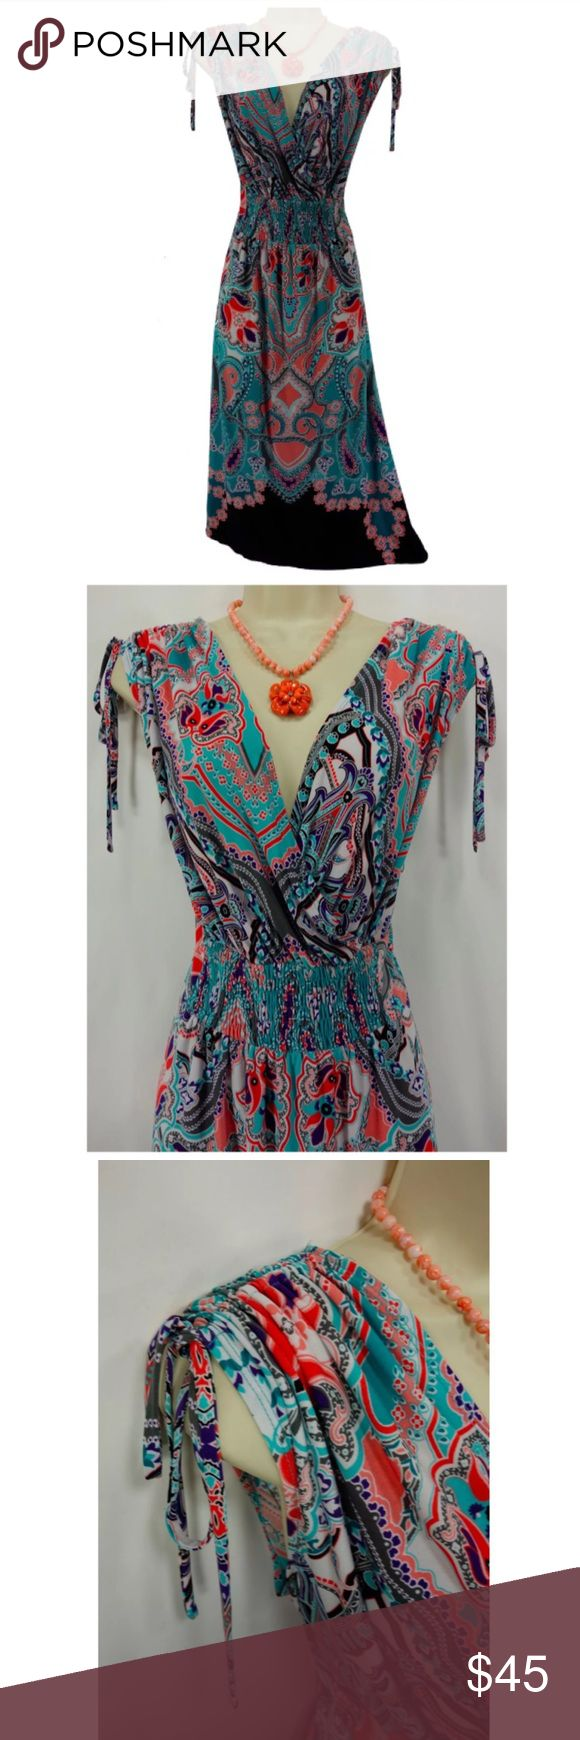 """Size 18W 2X PAISLEY PRINT SUMMER DRESS Plus Size We LOVE this sexy, sweet summer dress!   Size: 18W Back zip Surplice neckline in front/ V in back Smocked waist Gorgeous paisley print in shades of coral & turquoise Shoulder straps cinch & tie Stretchy, comfortable fabric Measurements: Bust (armpit to armpit):  46"""" relaxed - stretches to 56"""" Waist: 41"""" relaxed - stretches to 48"""" Hips:  55"""" relaxed Length: 42.5"""" (top of shoulder to bottom hem)  Condition: PRISTINE CONDITION! Fabric Content…"""